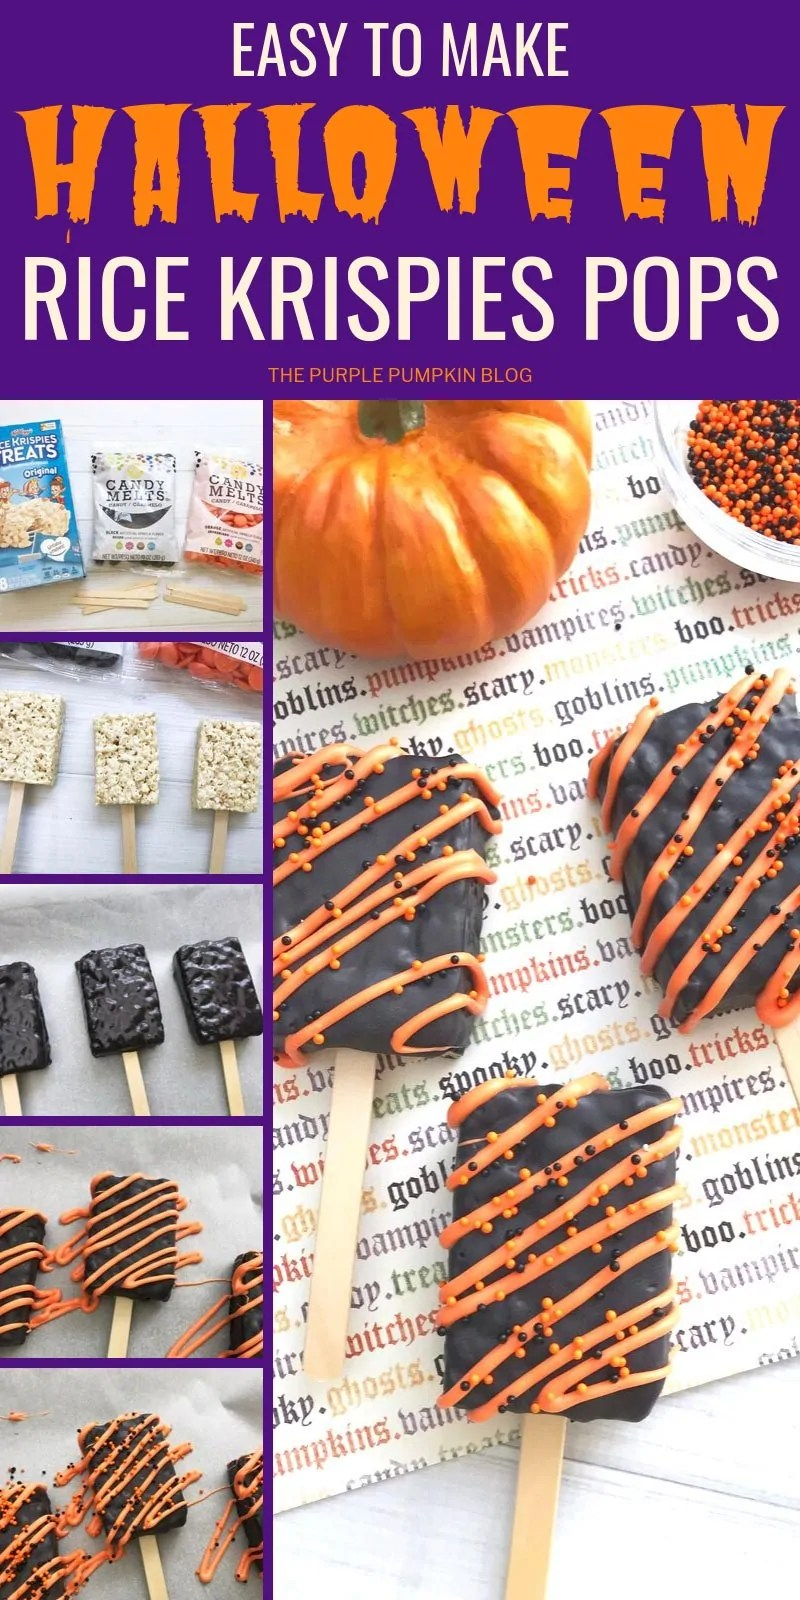 Step by step images for Halloween rice krispies pops